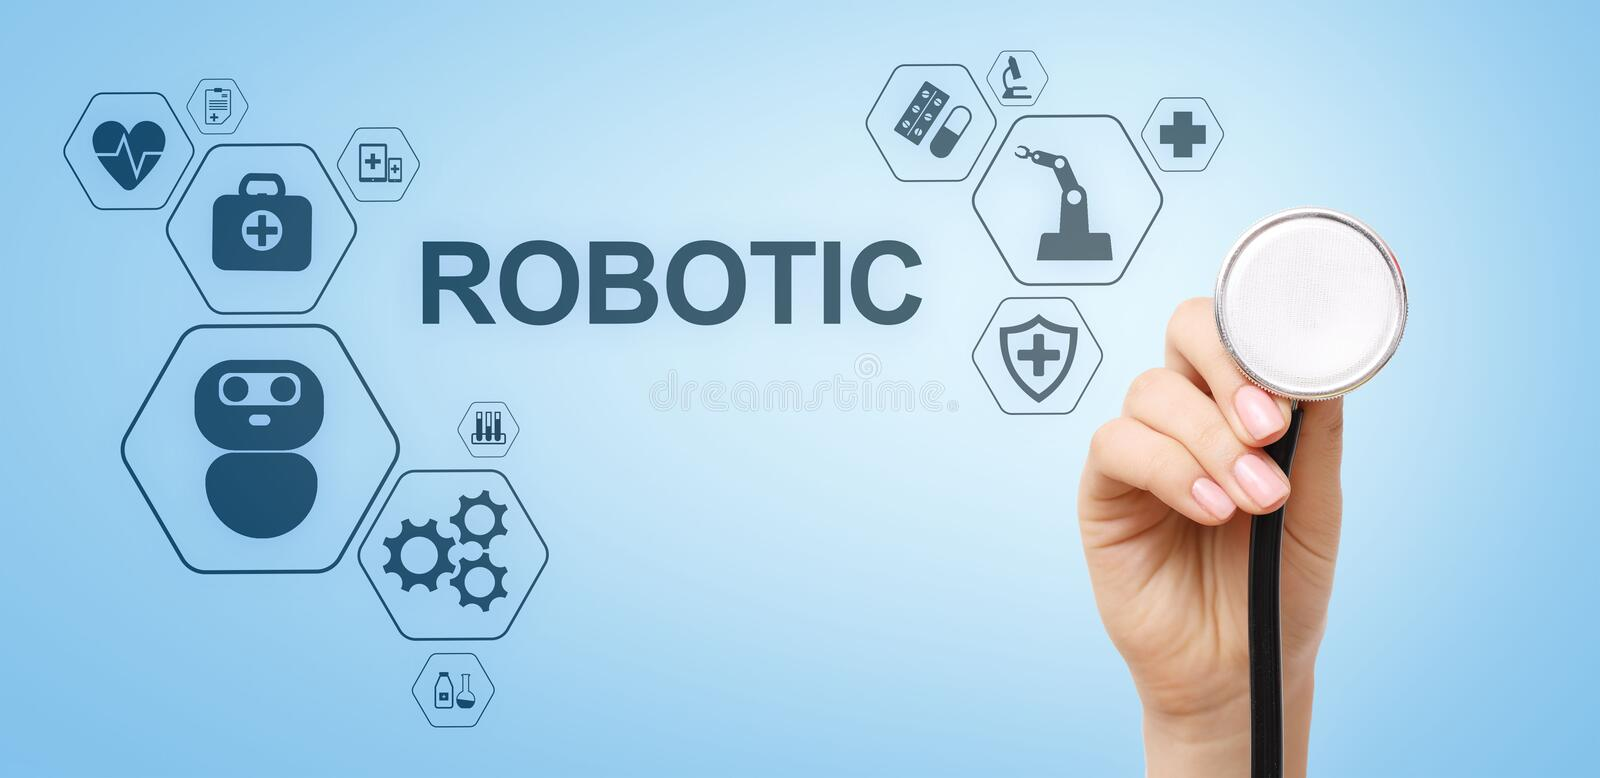 Medical robot rpa automation modern technology in medicine concept. Medical robot rpa automation modern technology in medicine concept stock image